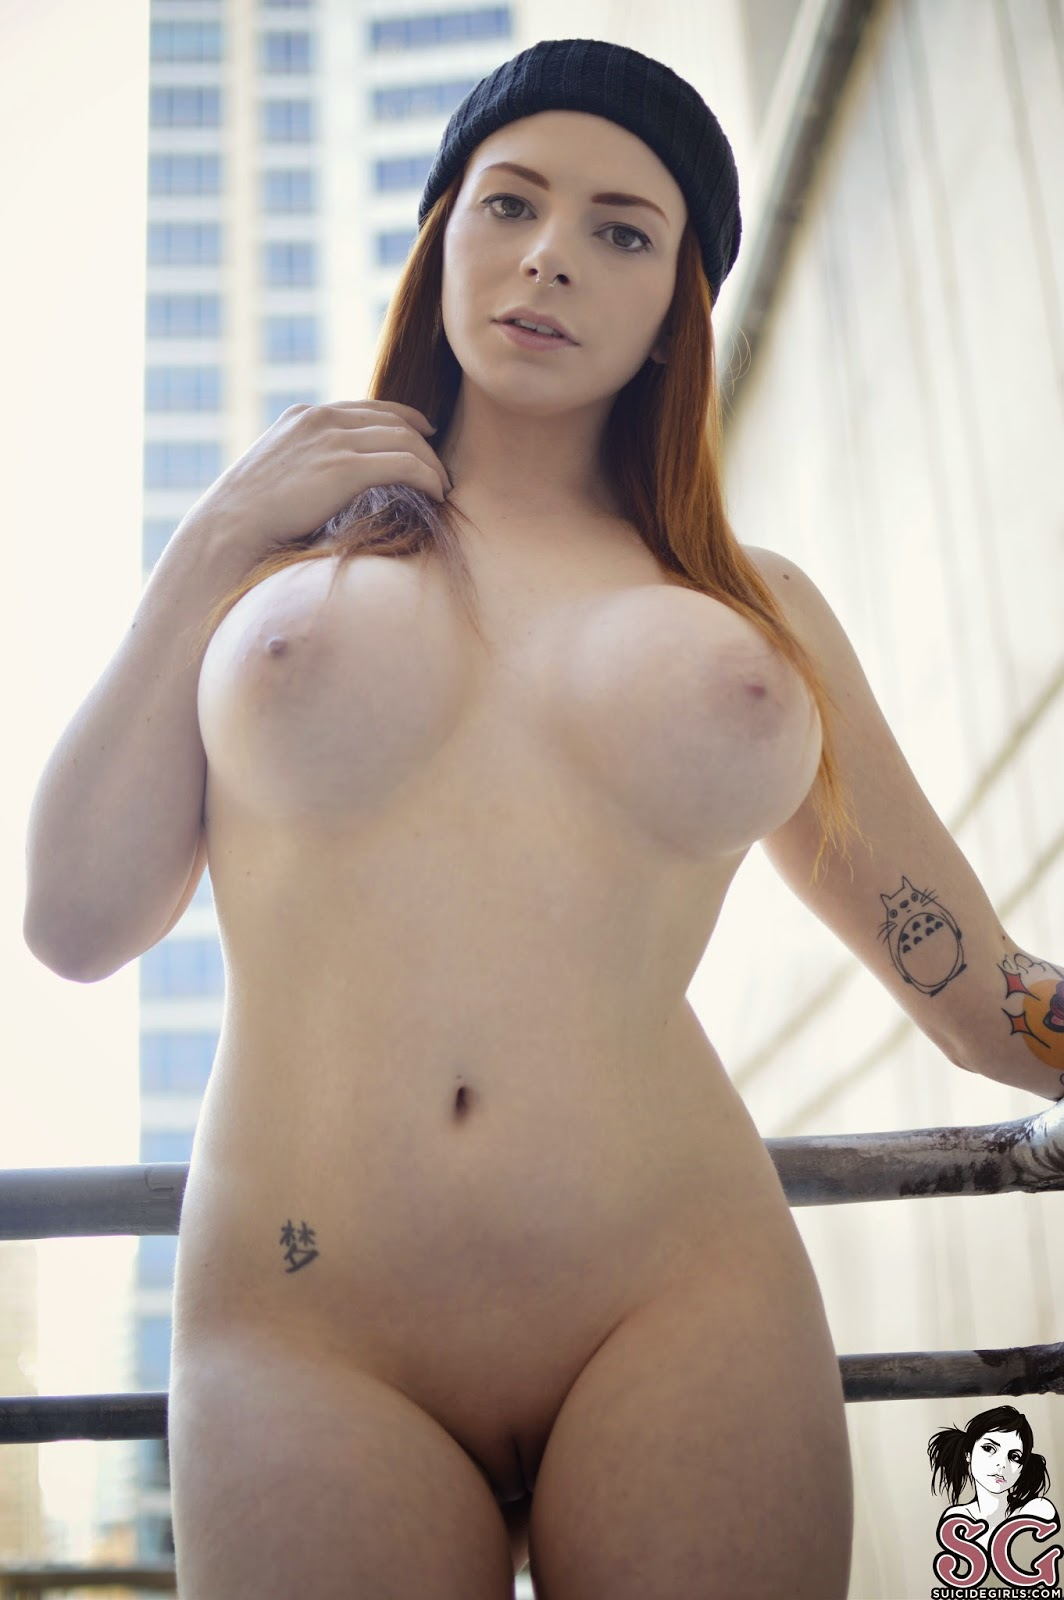 nude images of suicide girls